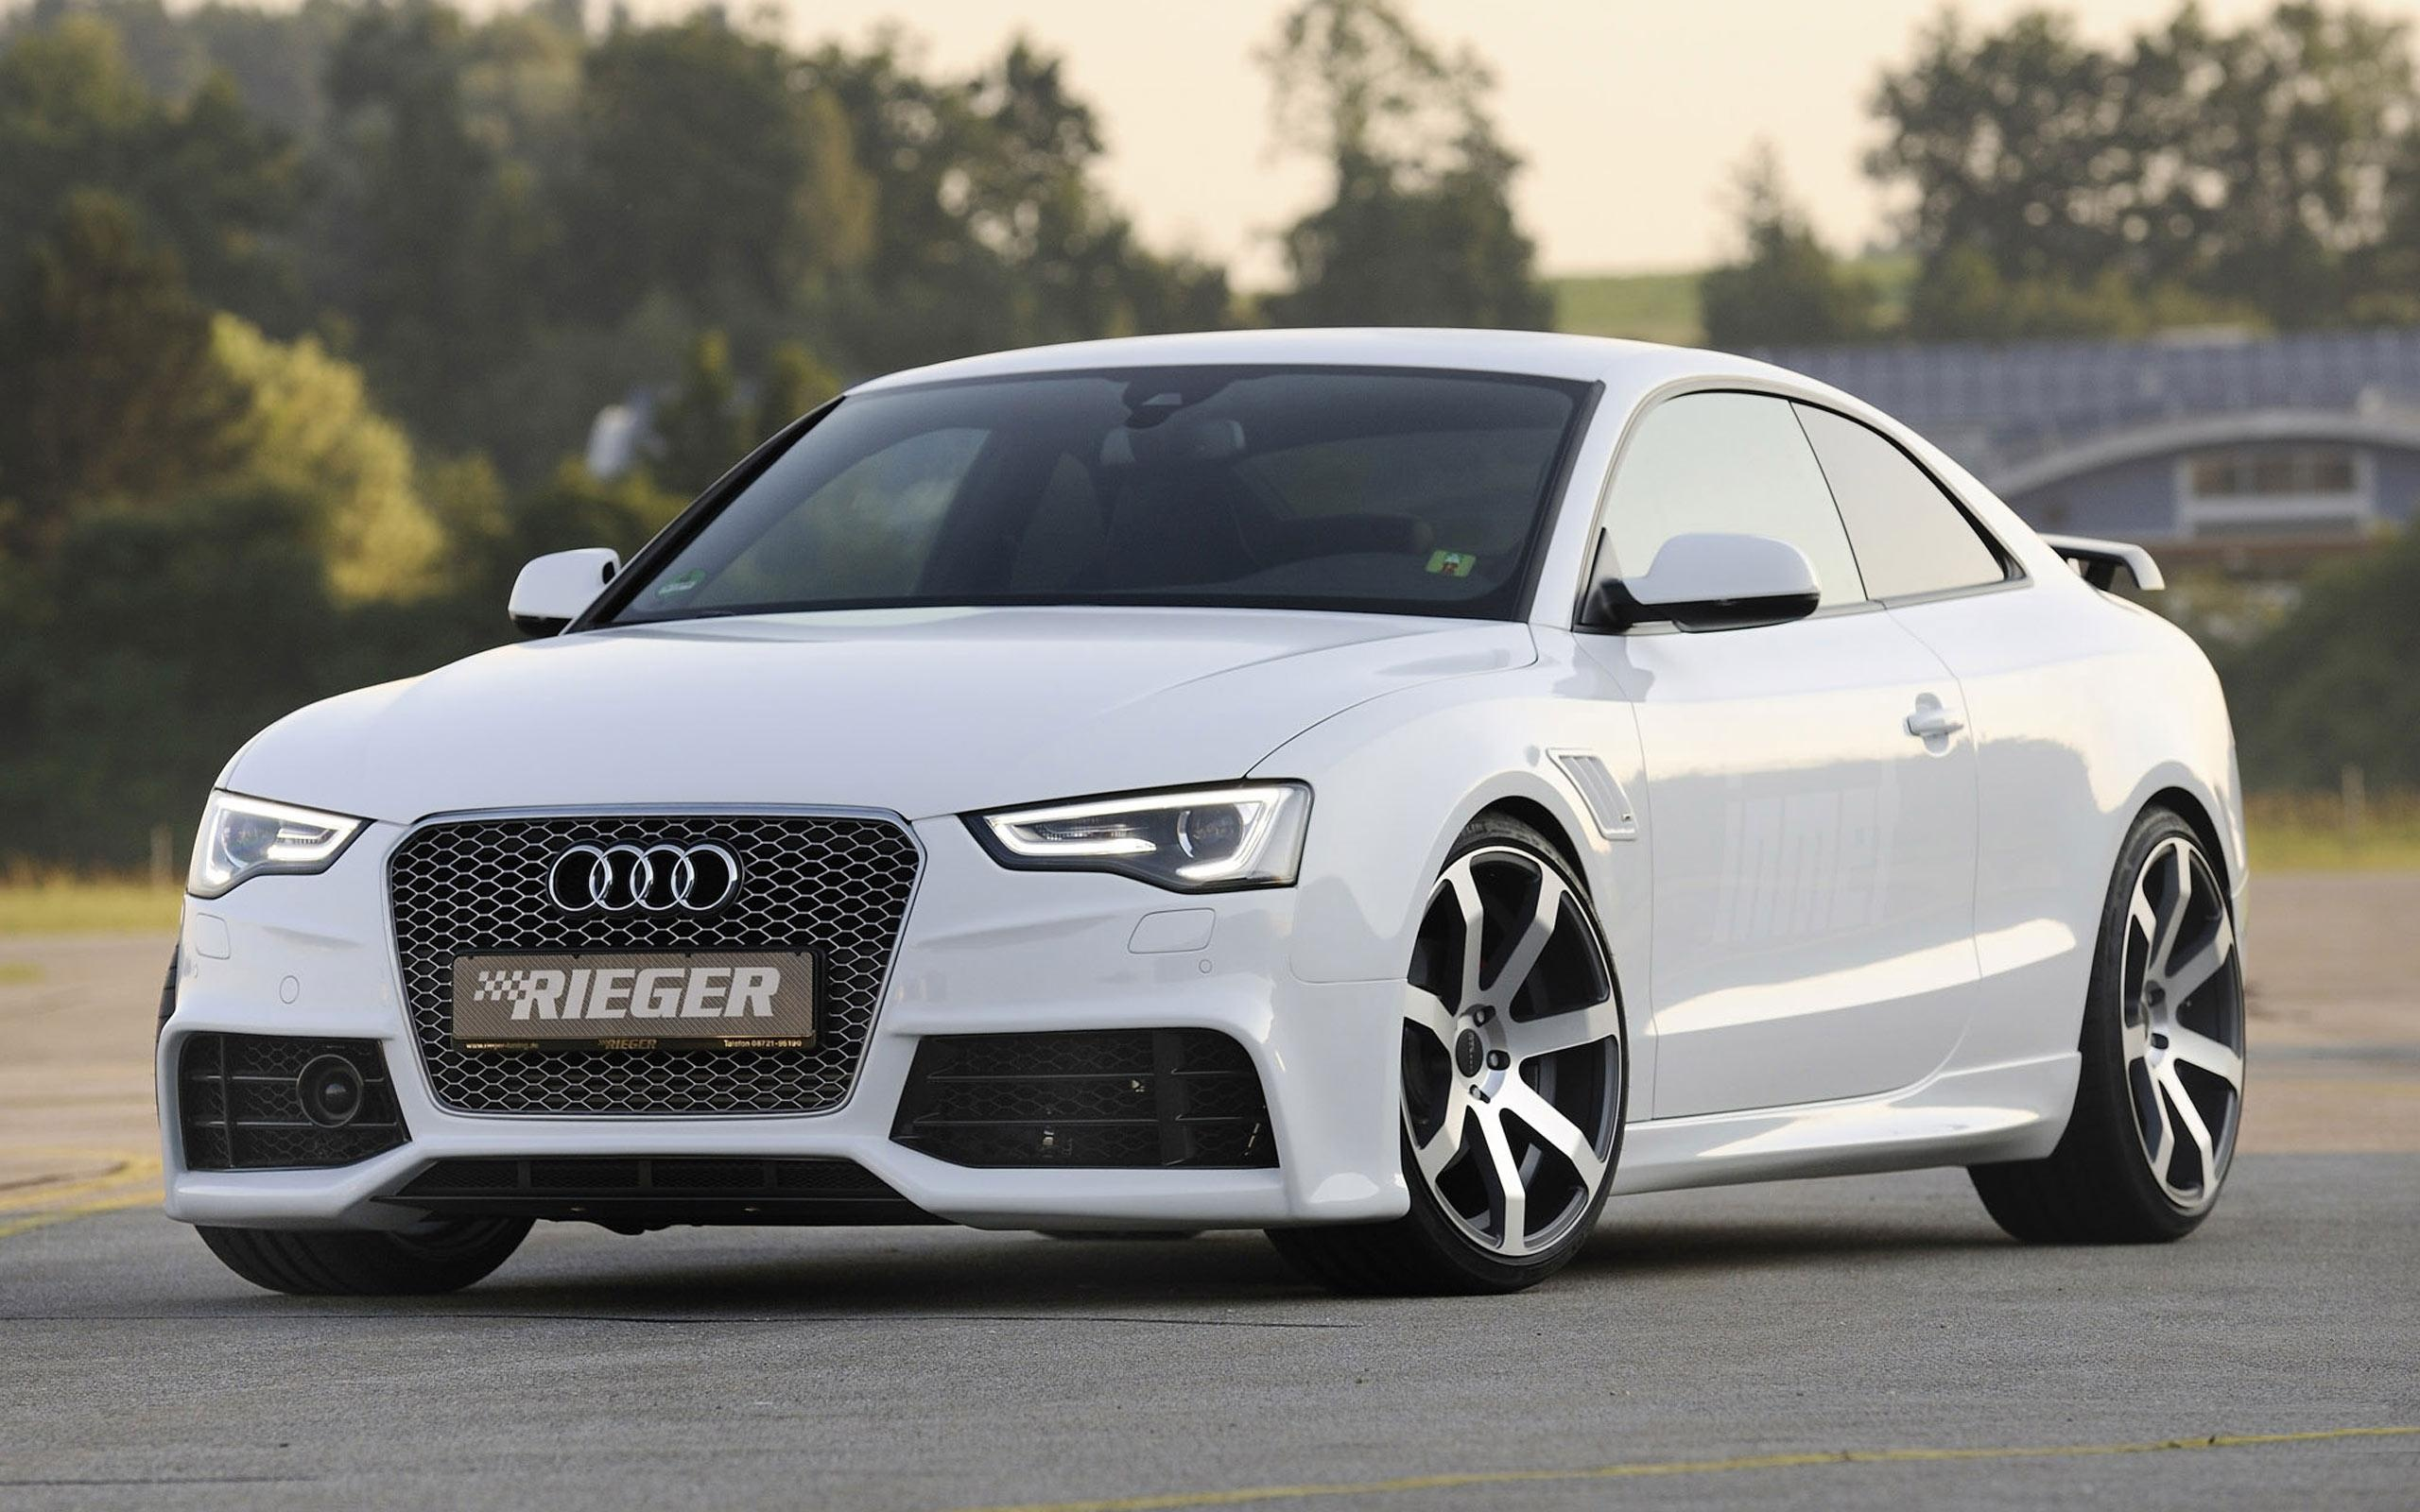 Audi Rieger White Car Wallpapers 2560x1600 737993